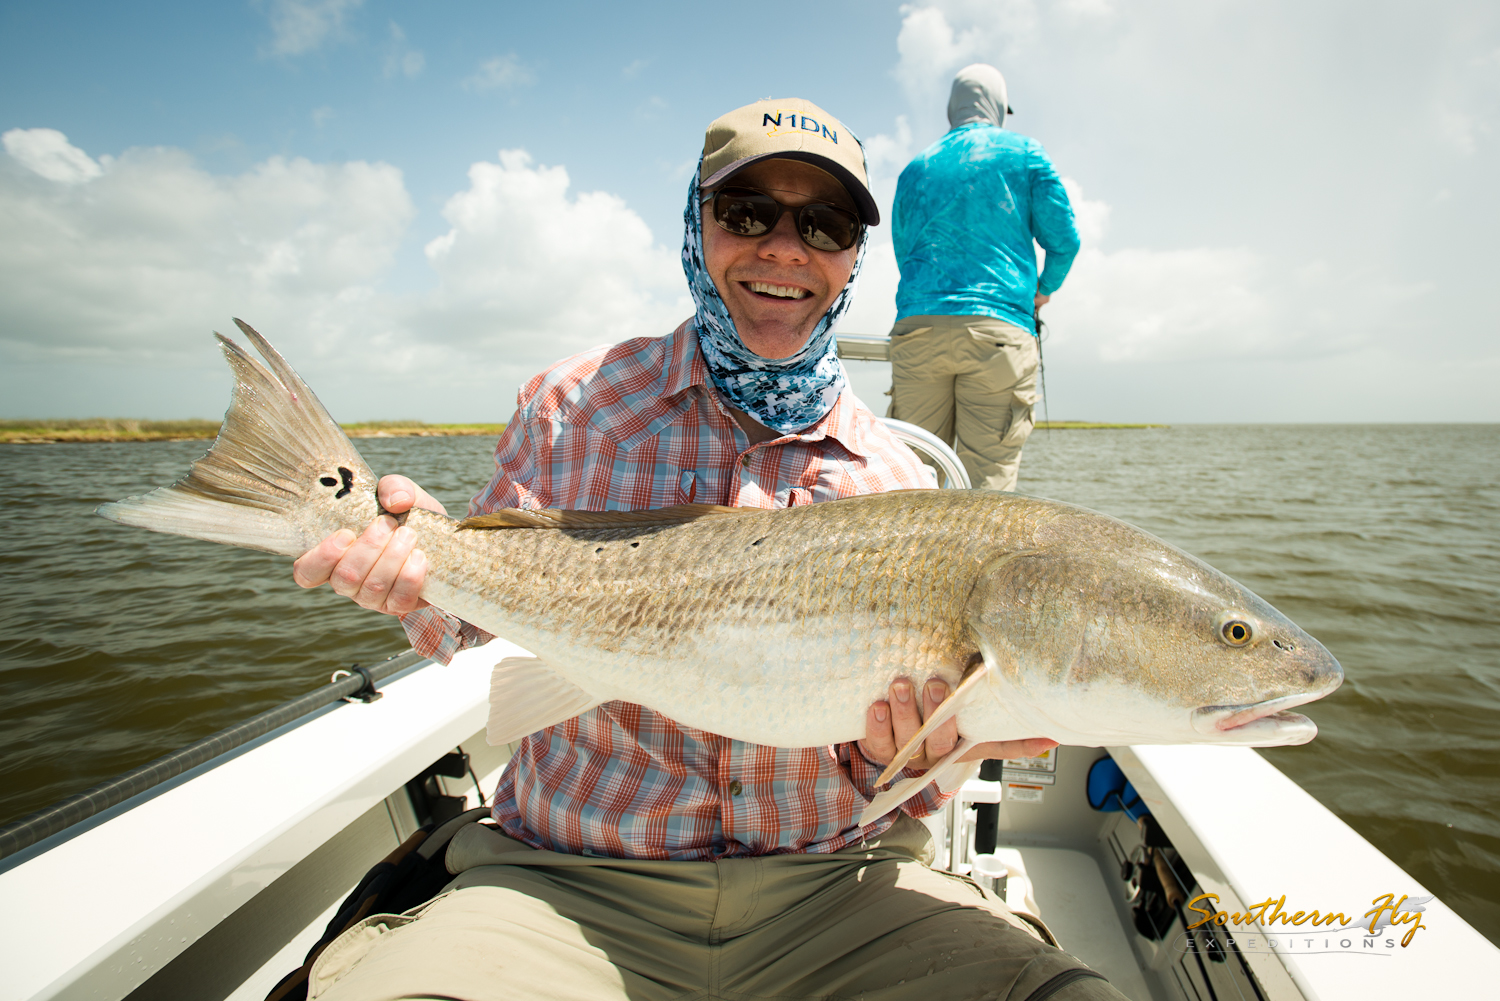 July fly fishing new orleans louisiana with southern fly expeditions